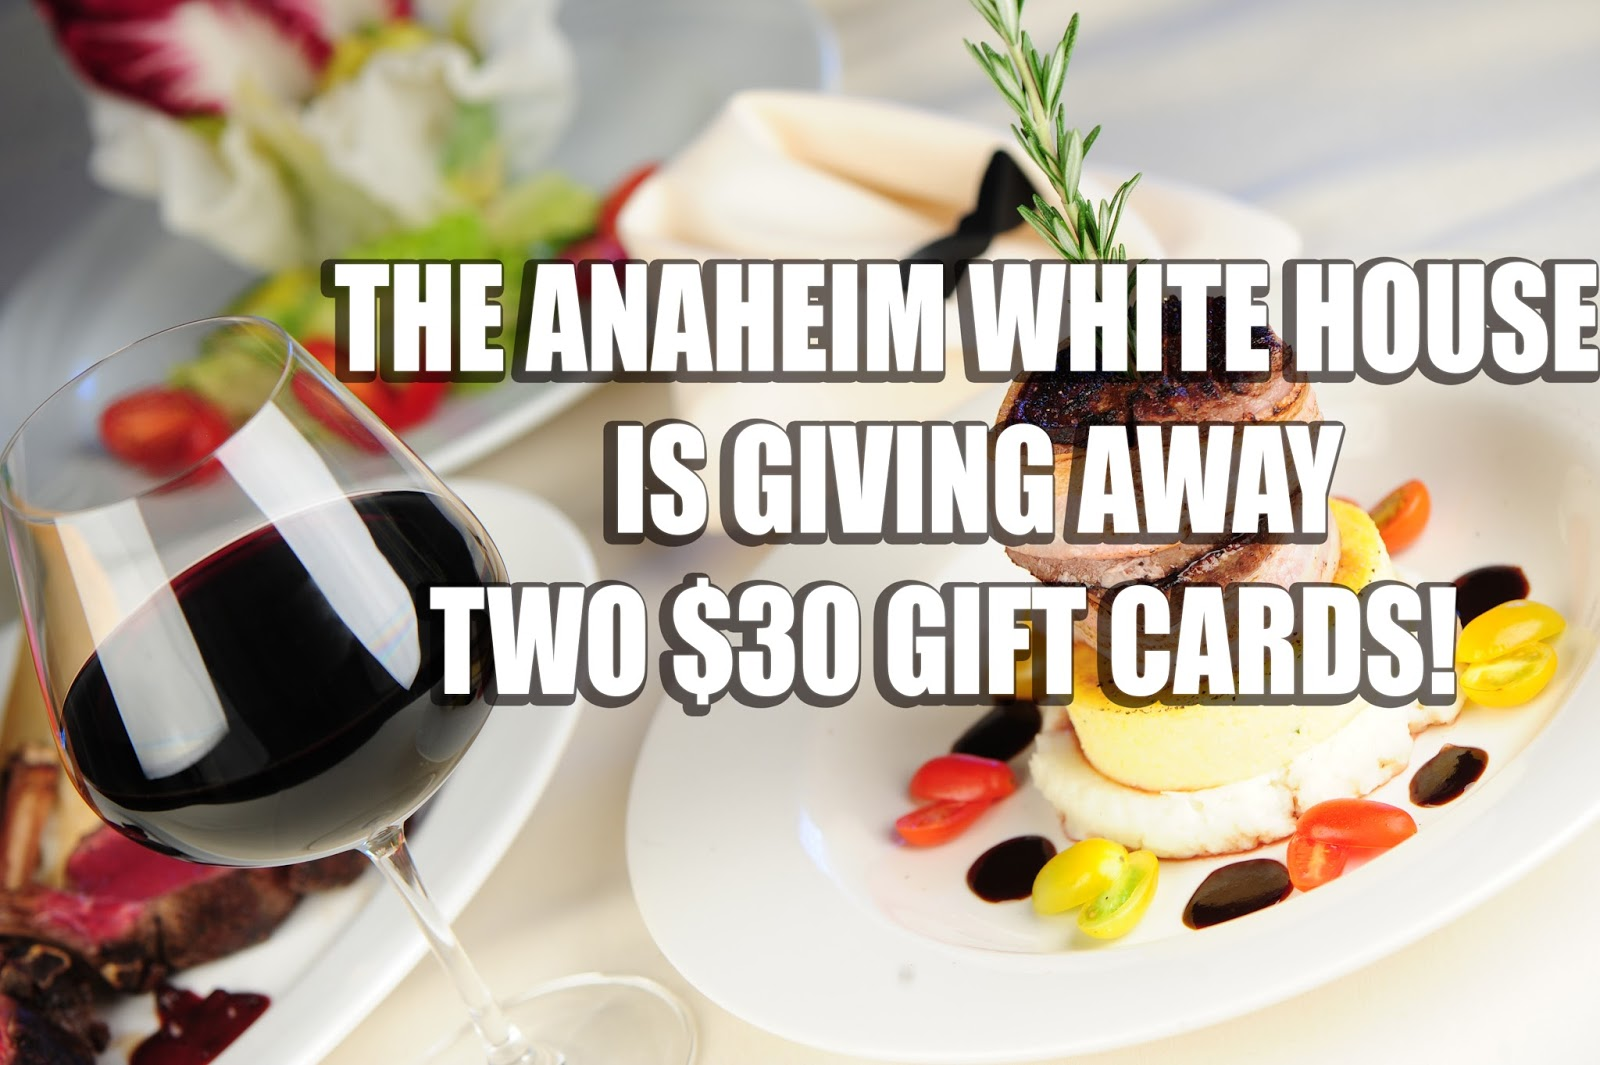 DON'T MISS YOUR CHANCE FOR FREE GIFT CARDS TO THE UPSCALE ANAHEIM WHITE HOUSE!